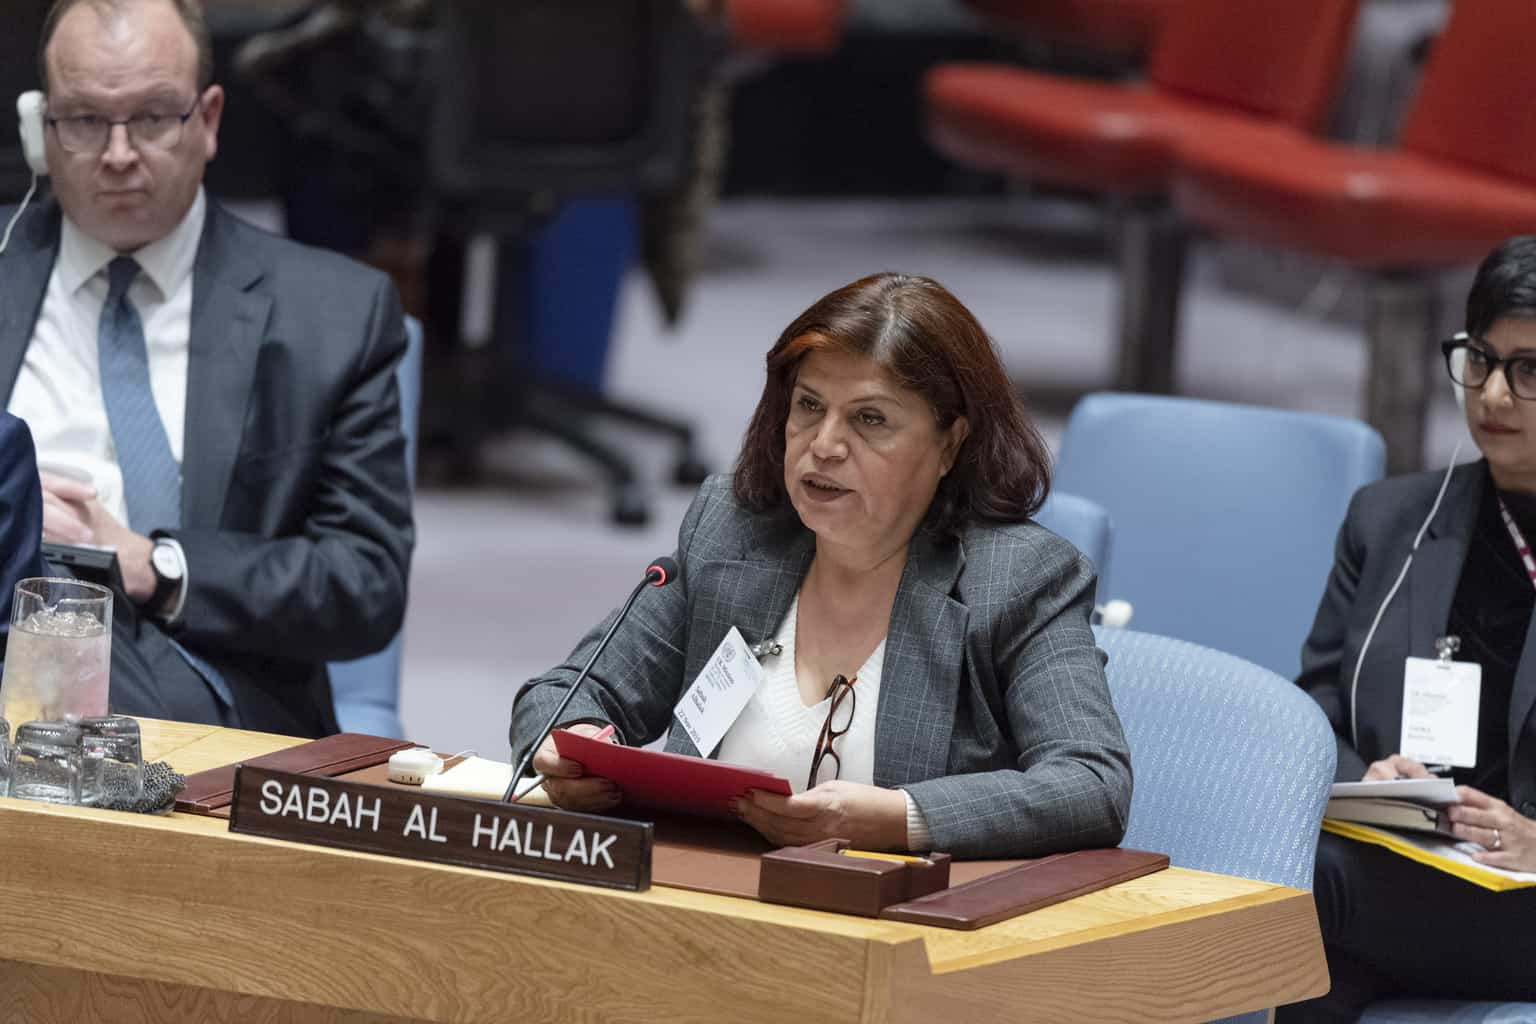 Sabah al Hallak addresses Security Council meeting on The situation in the Middle East (Syria)